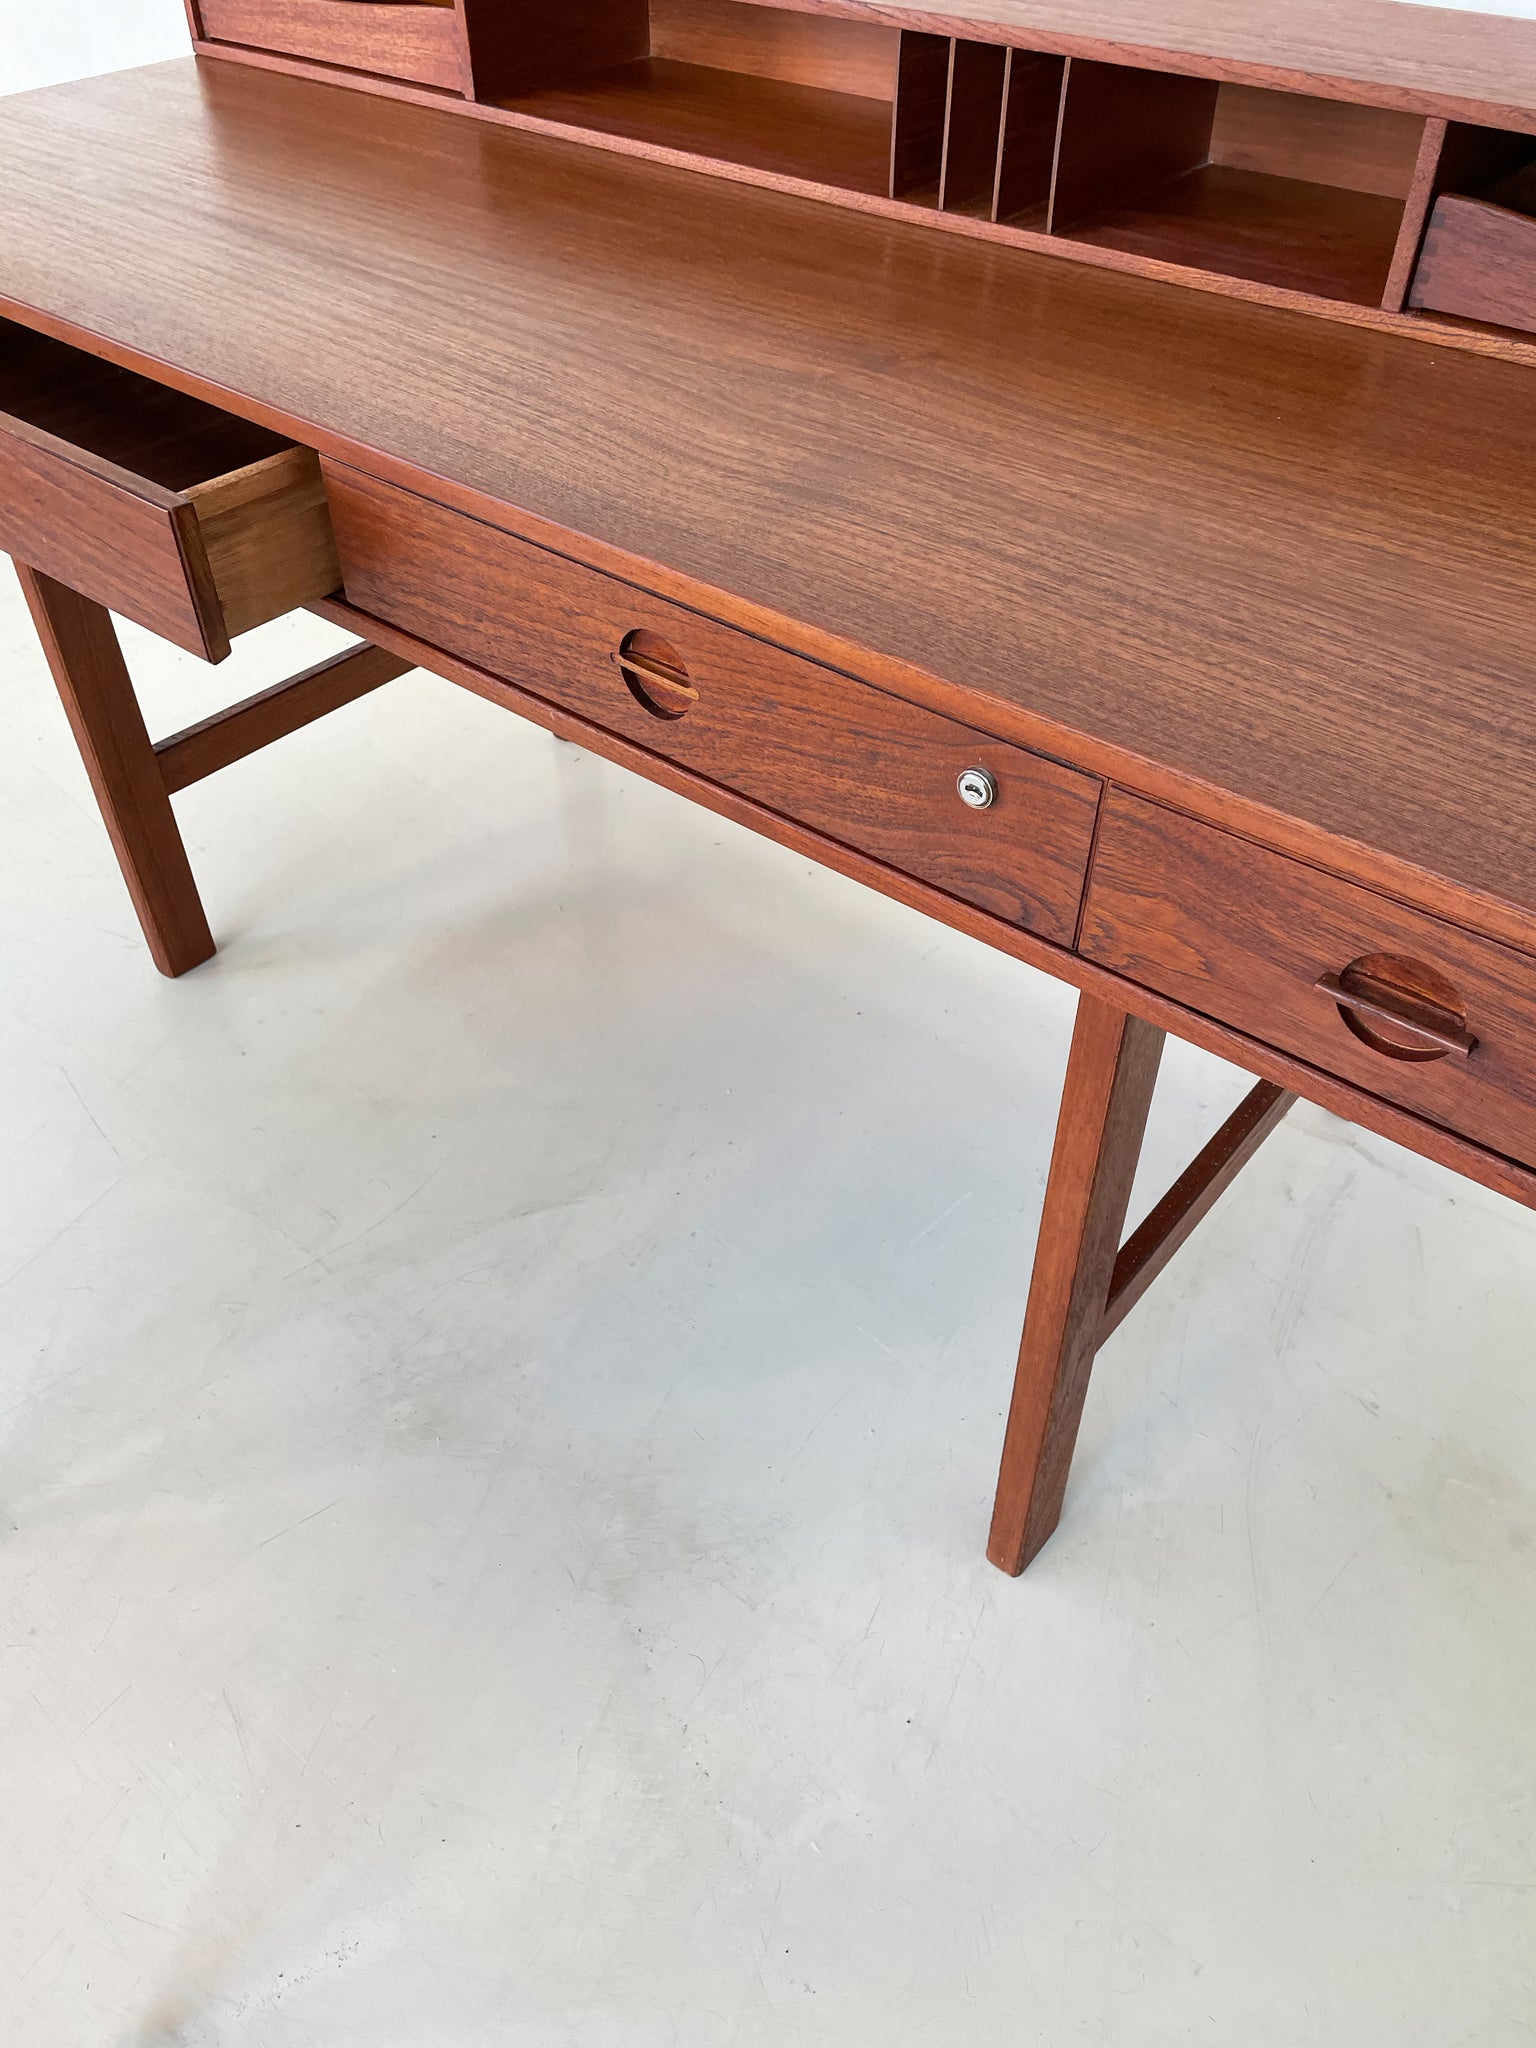 1975 Danish Mid Century Teak Flip Top Desk by Peter Lovig Nielsen